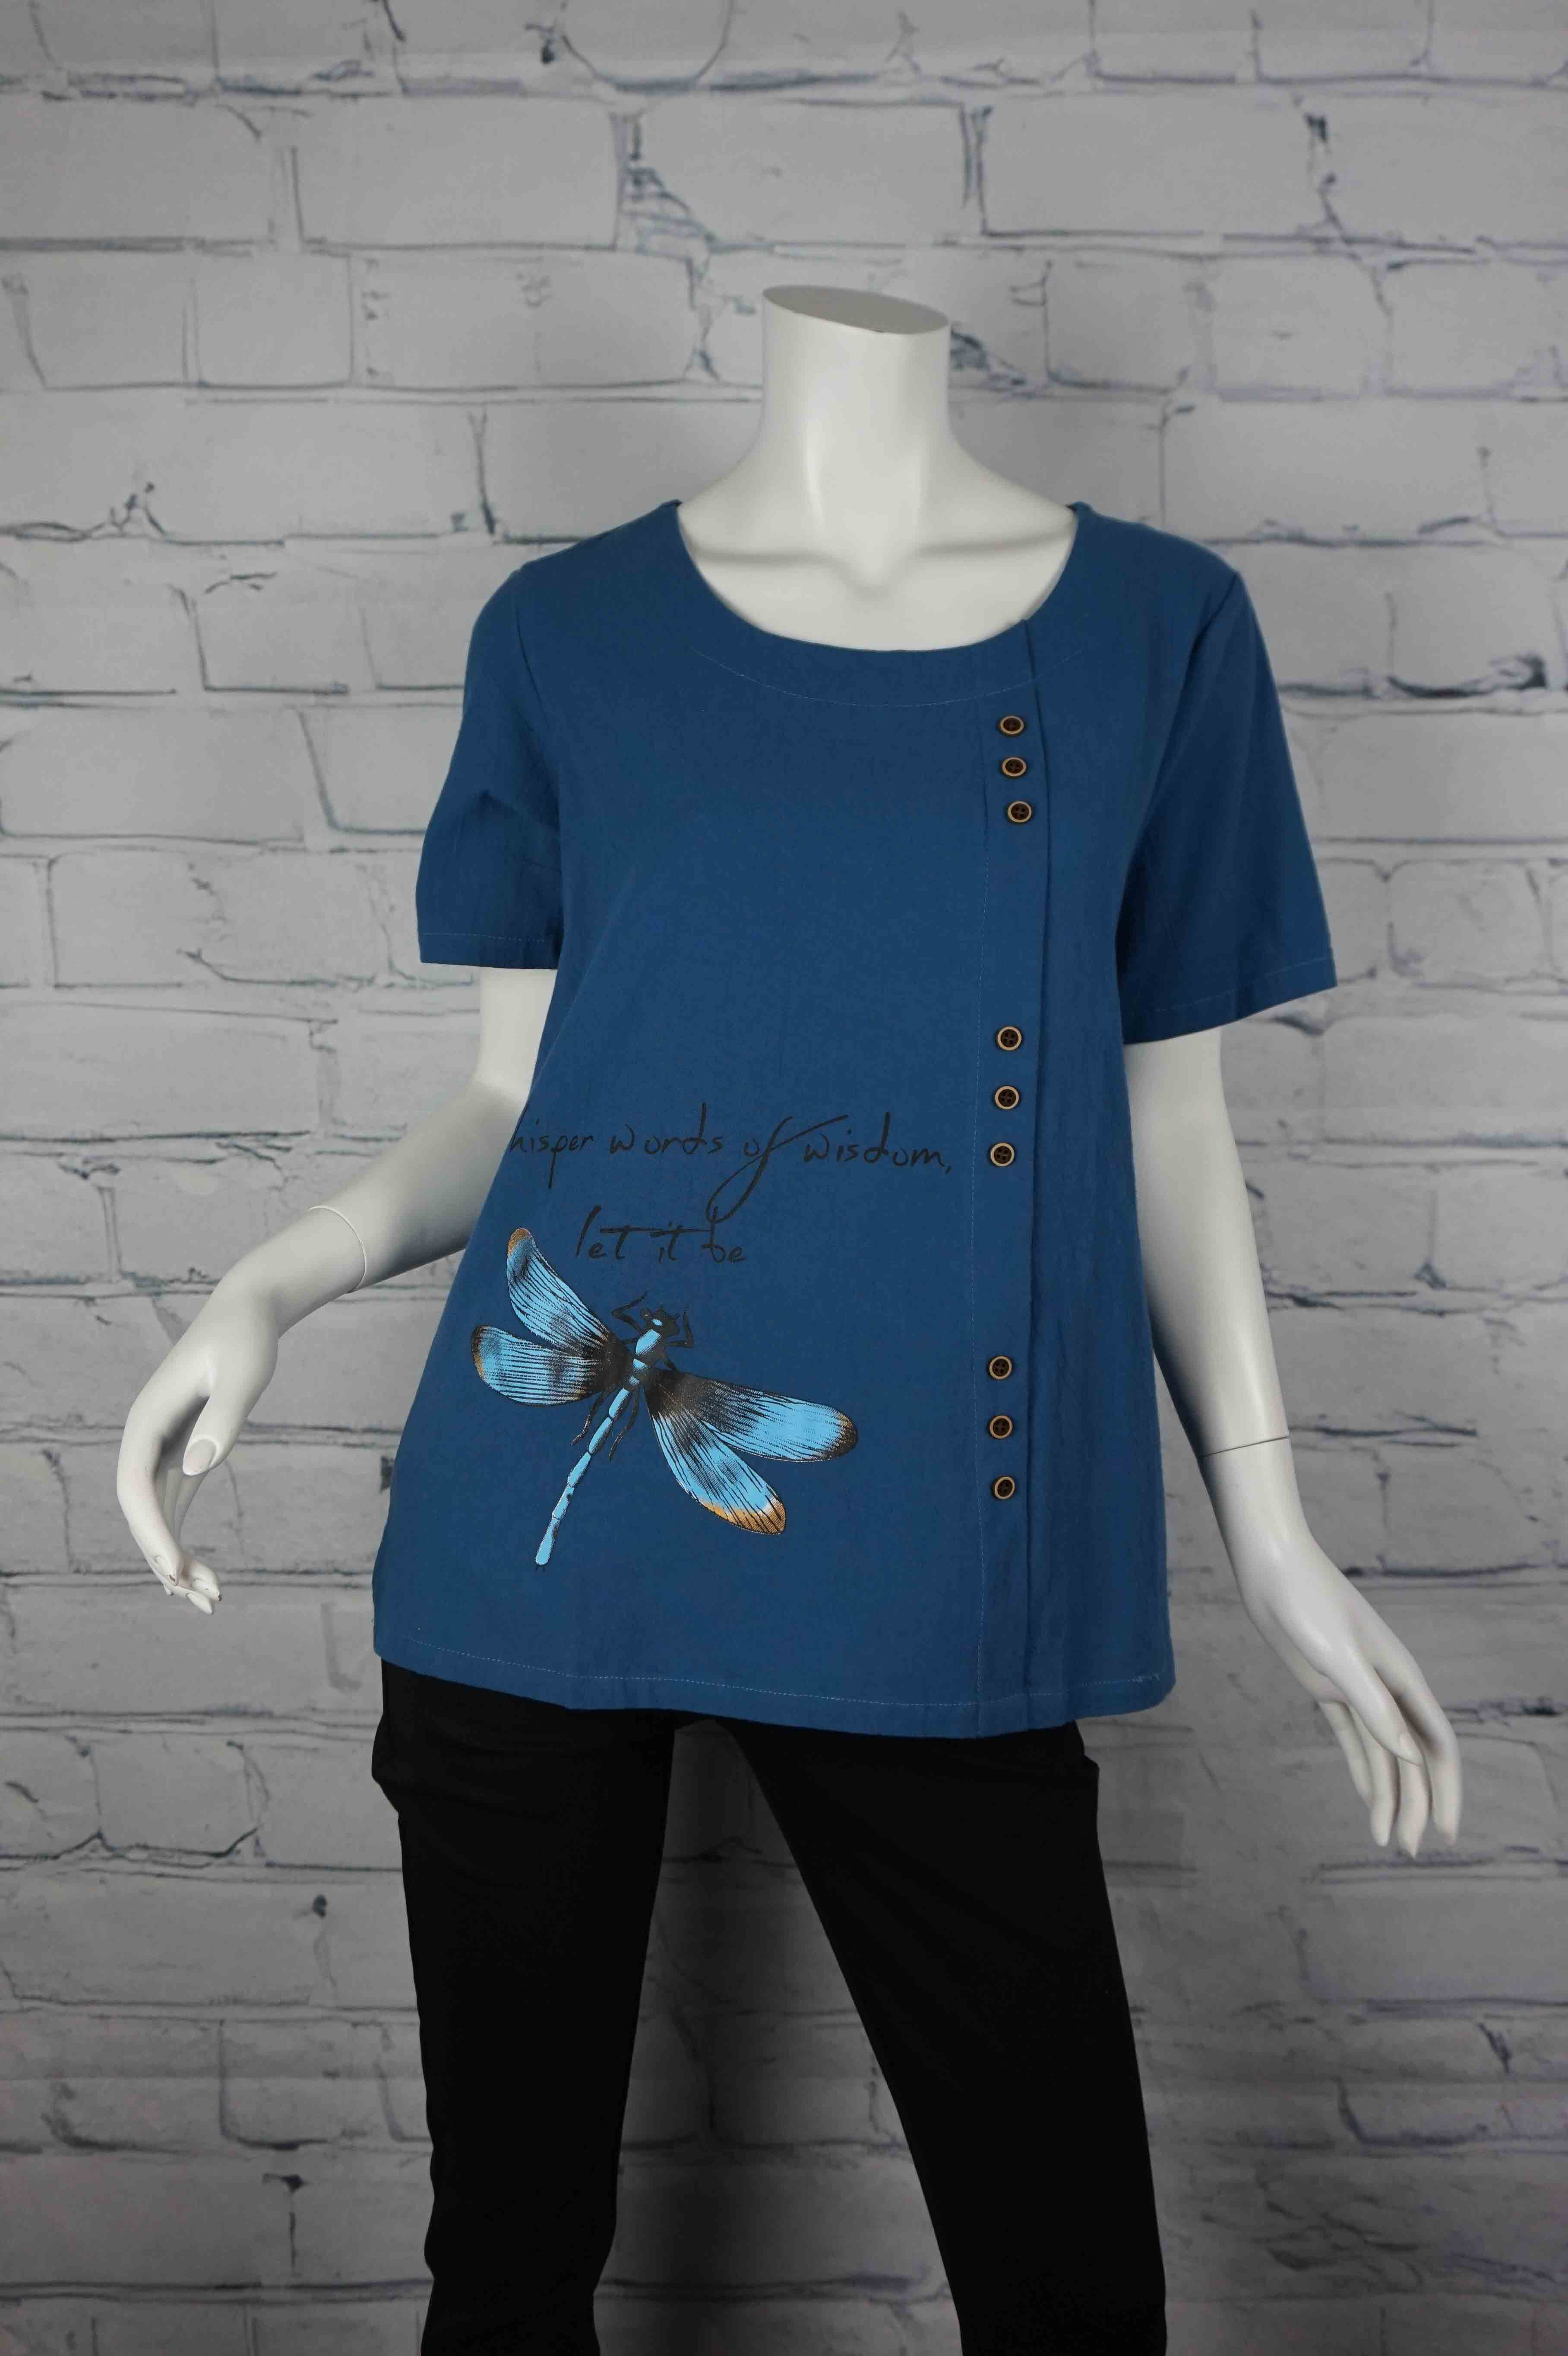 Portobello Road Cotton Top-Blu/LetItBe